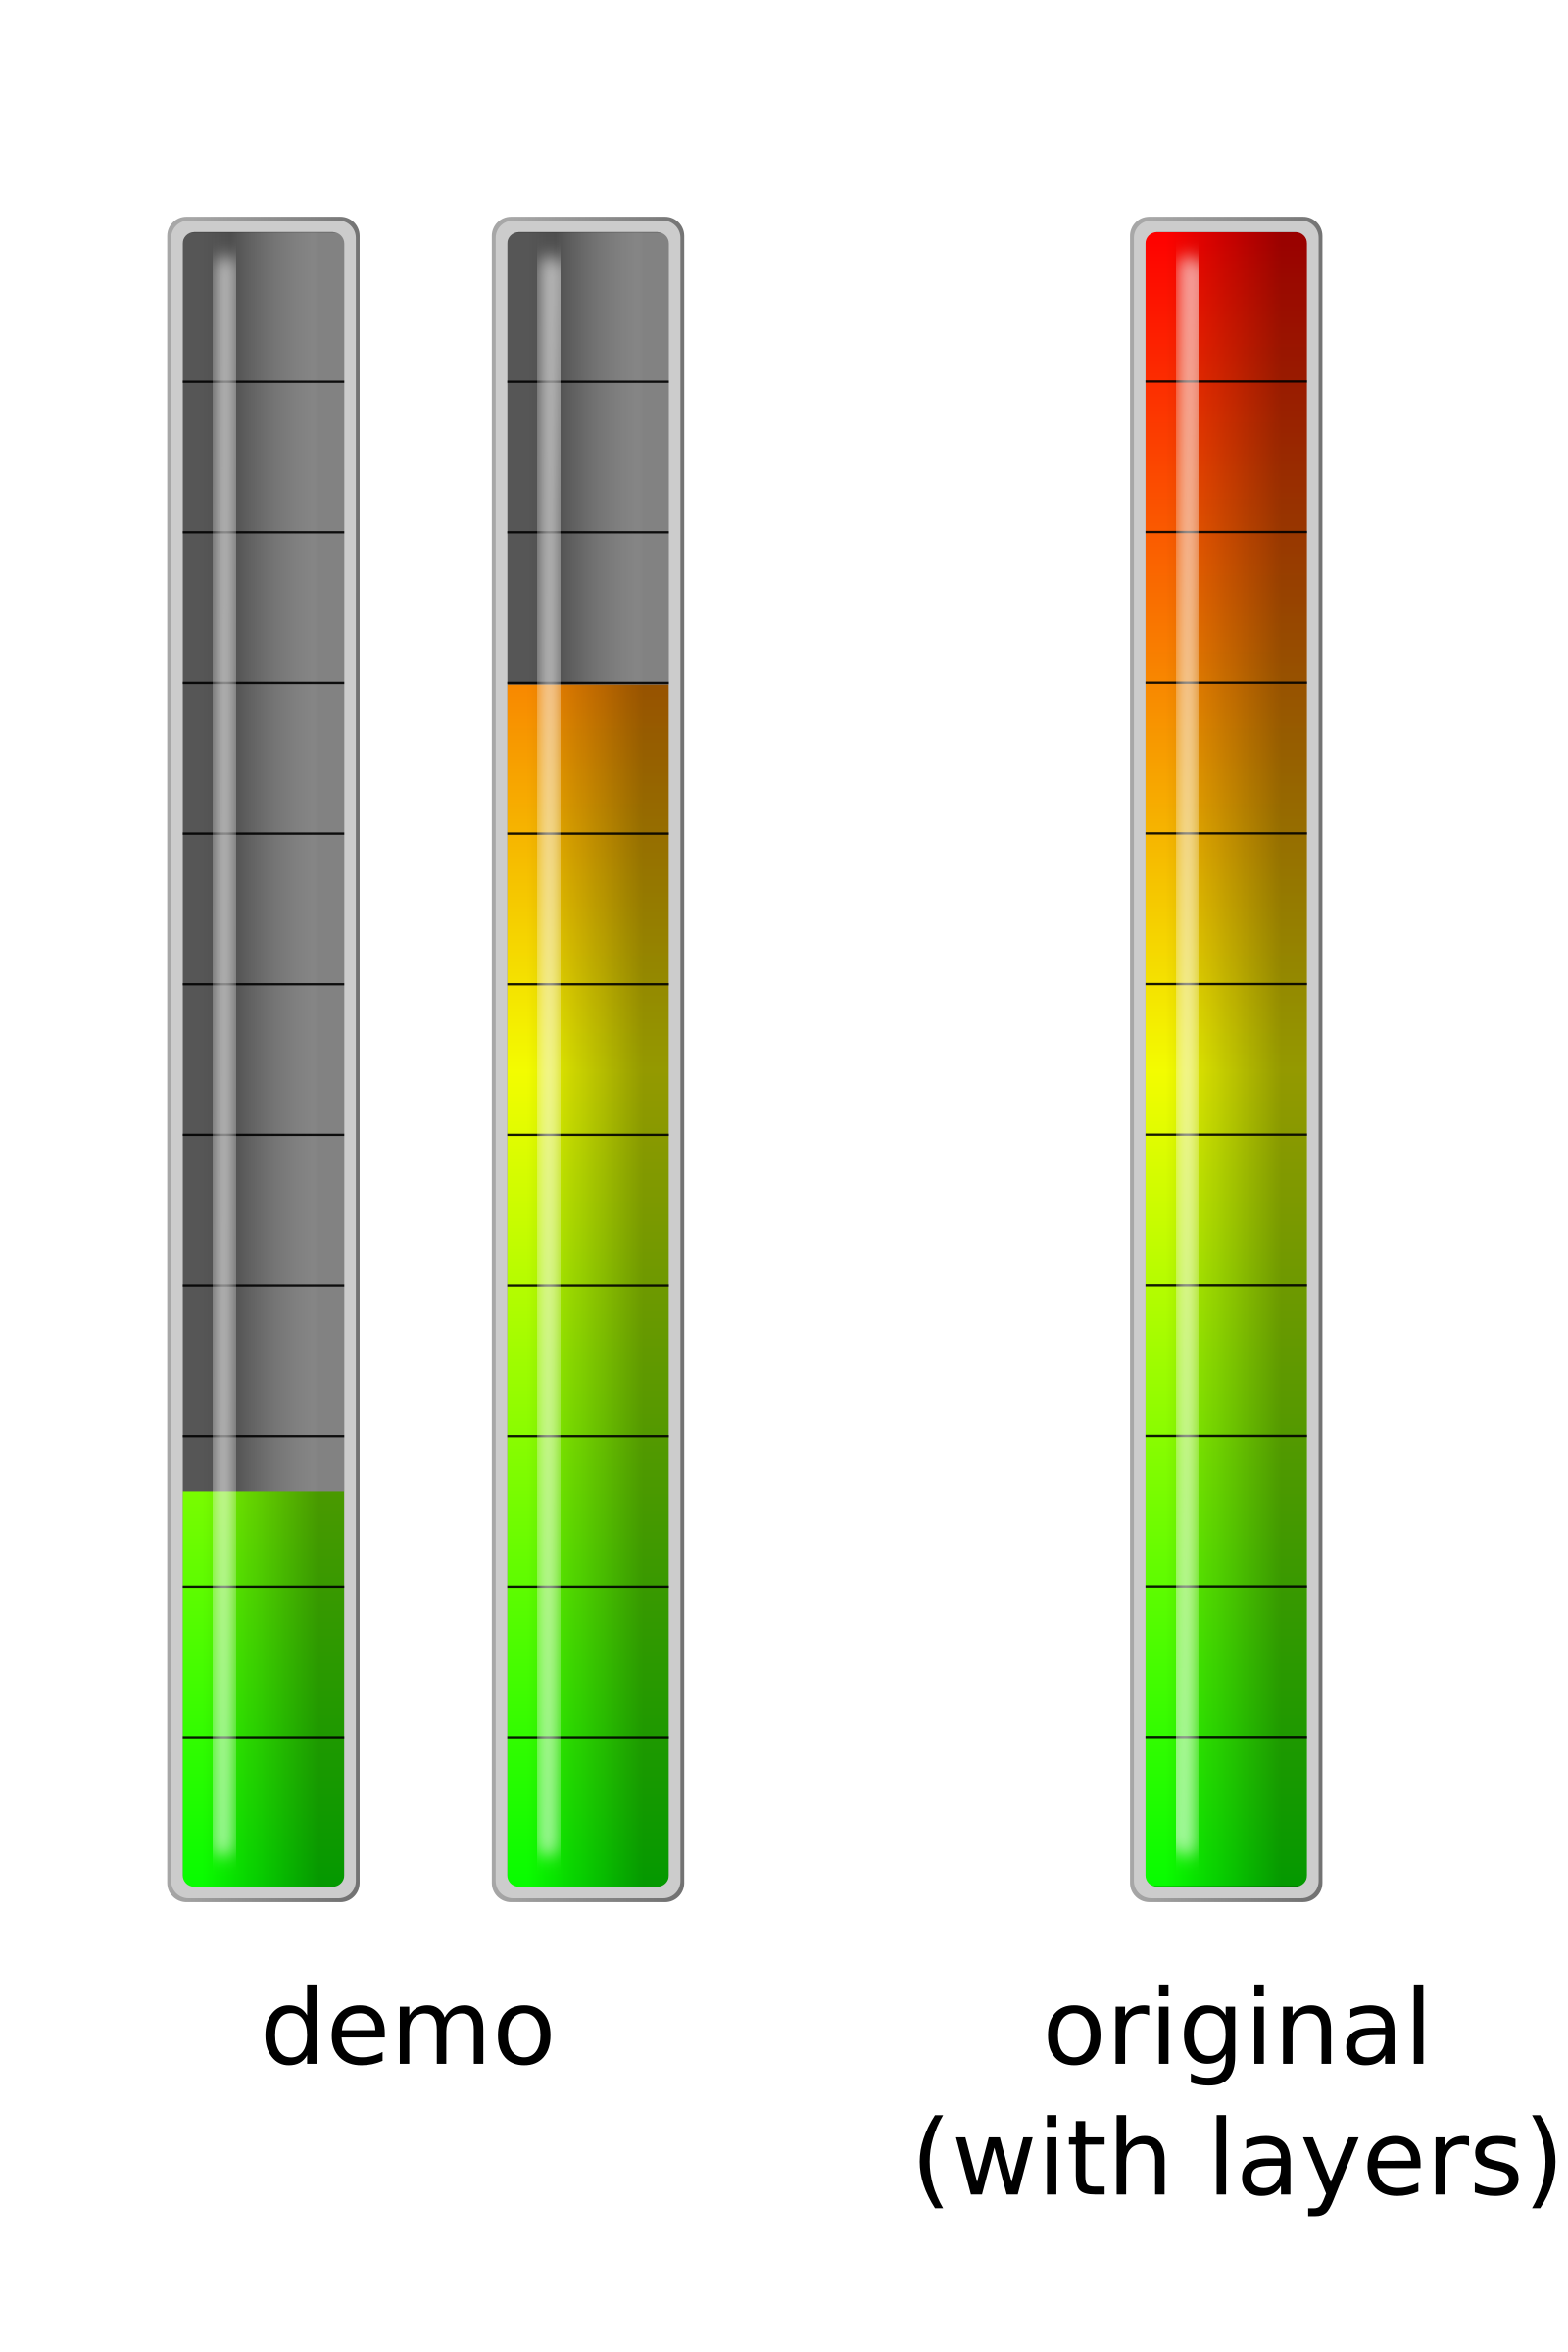 Fast clipart speed meter. Png transparent images pluspng